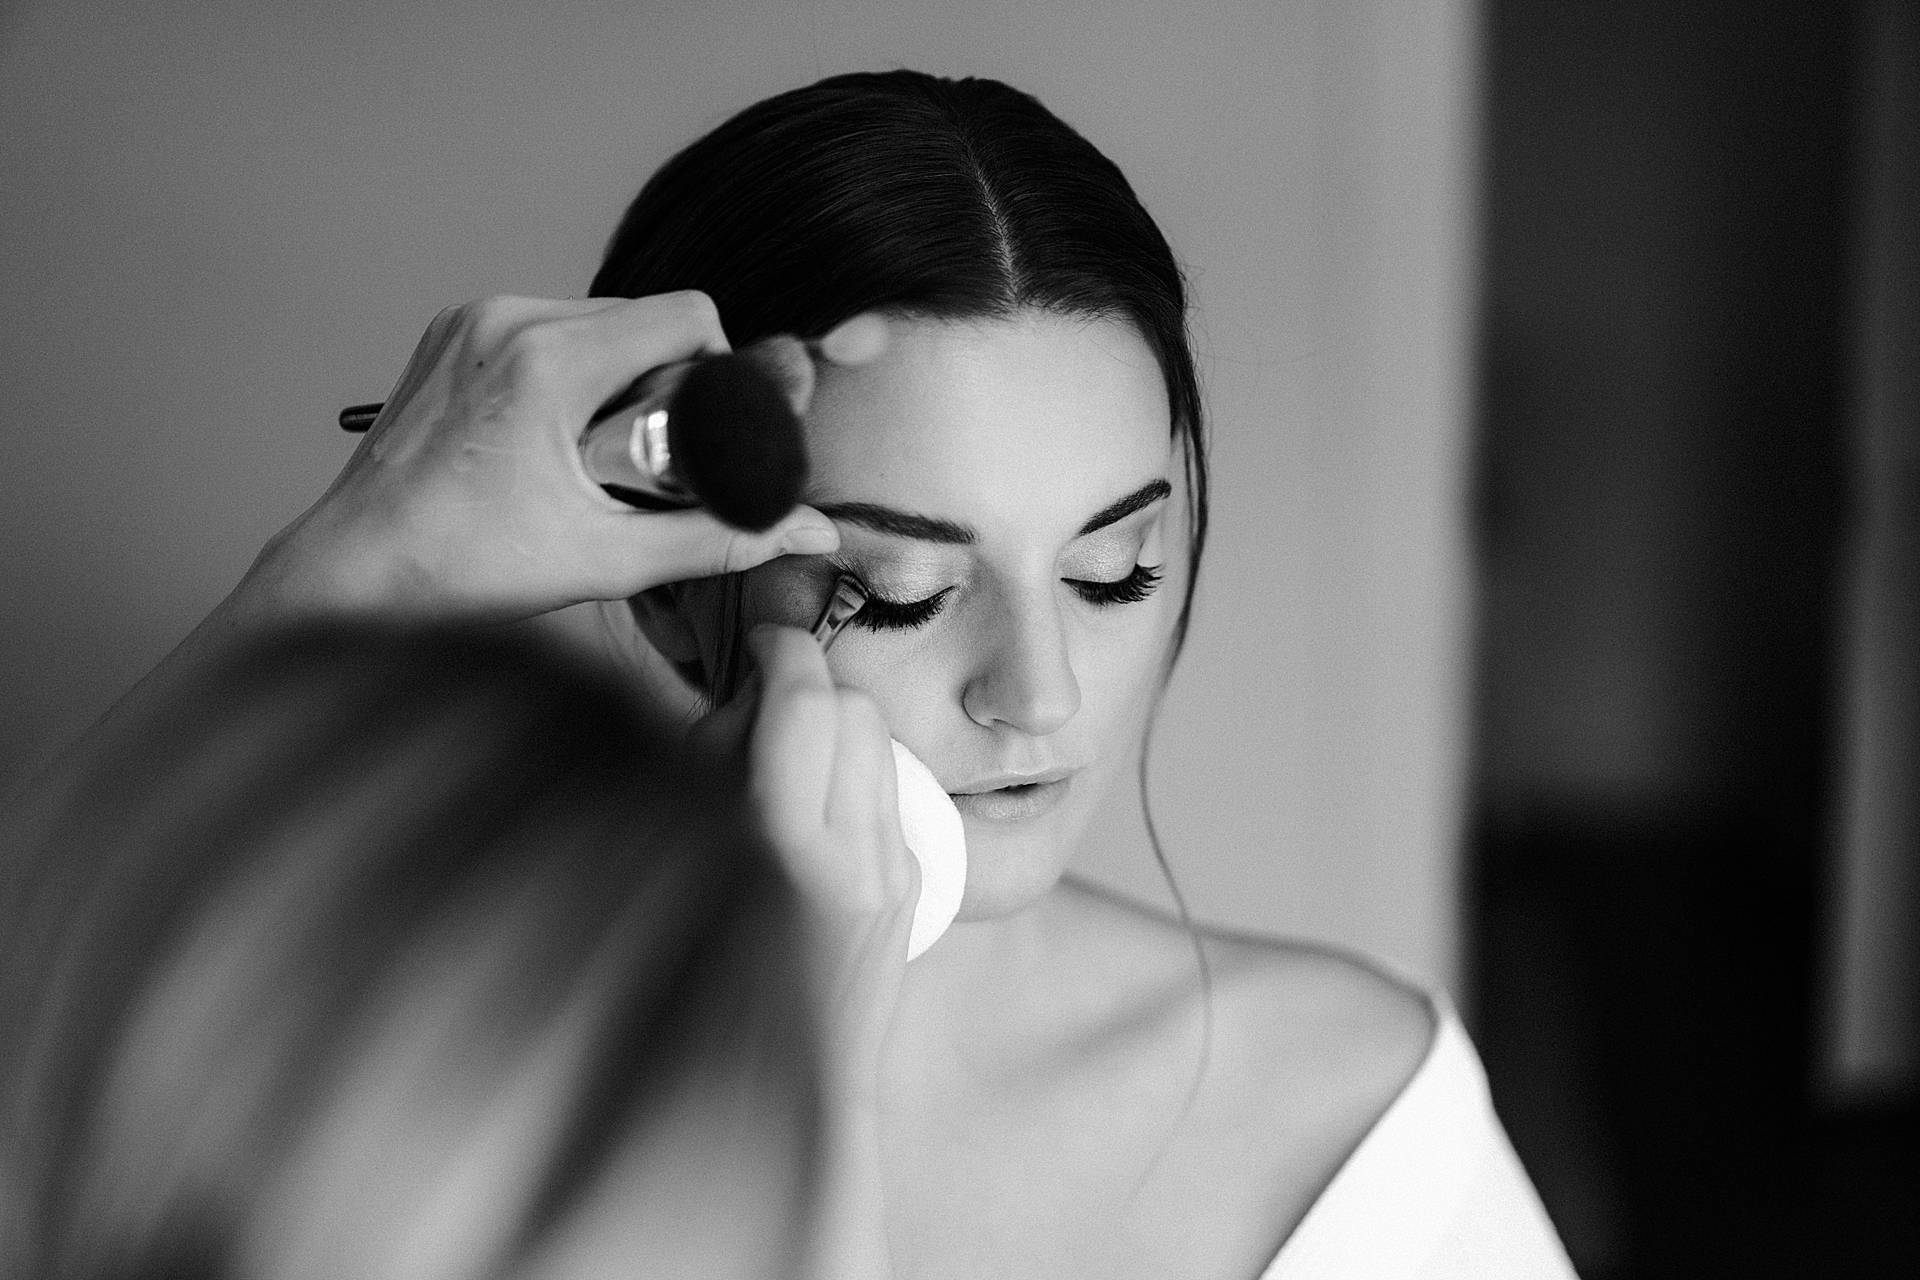 Zurich Wedding Photographer | The bride has makeup applied during her preparations